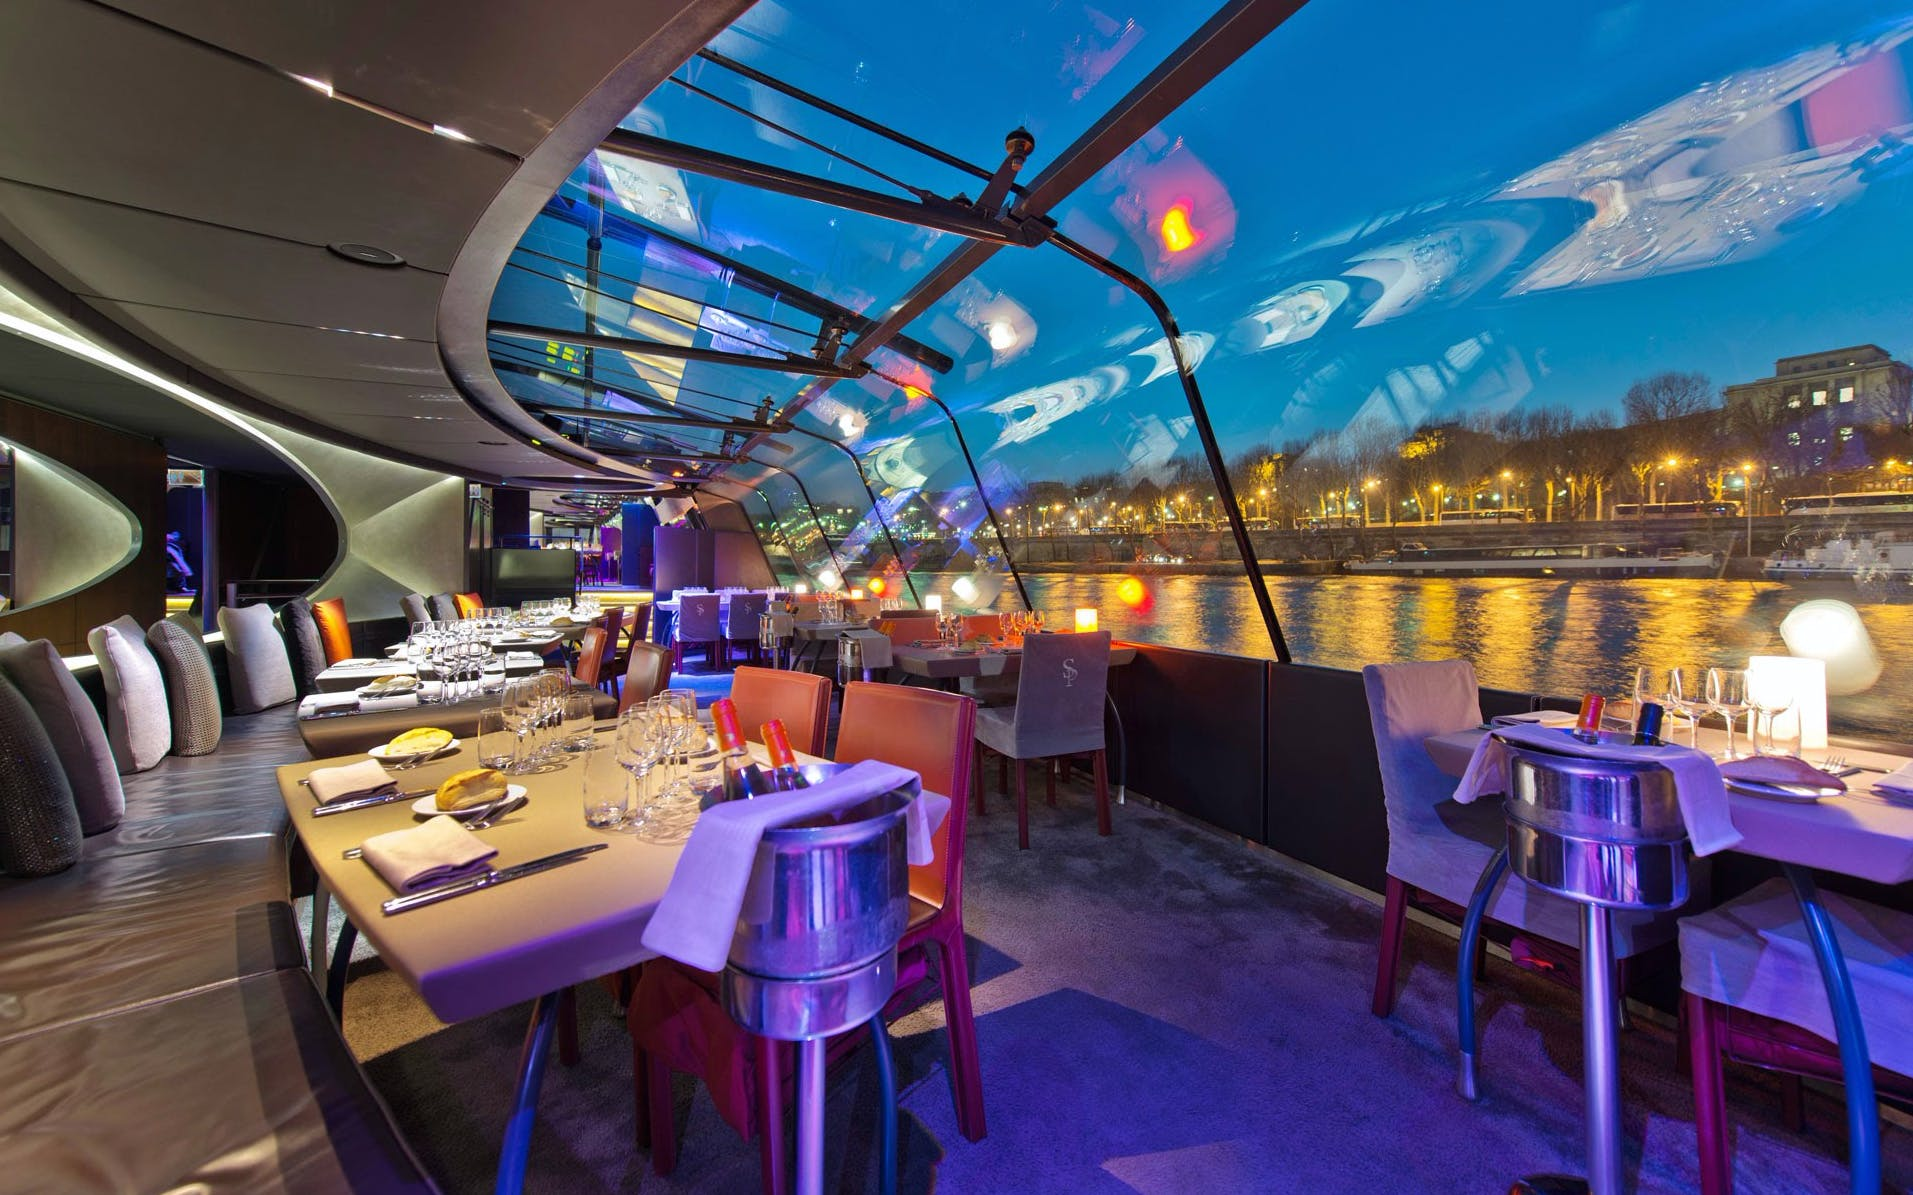 Bateaux Parisiens Late Evening Seine River Dinner Cruise With Wine